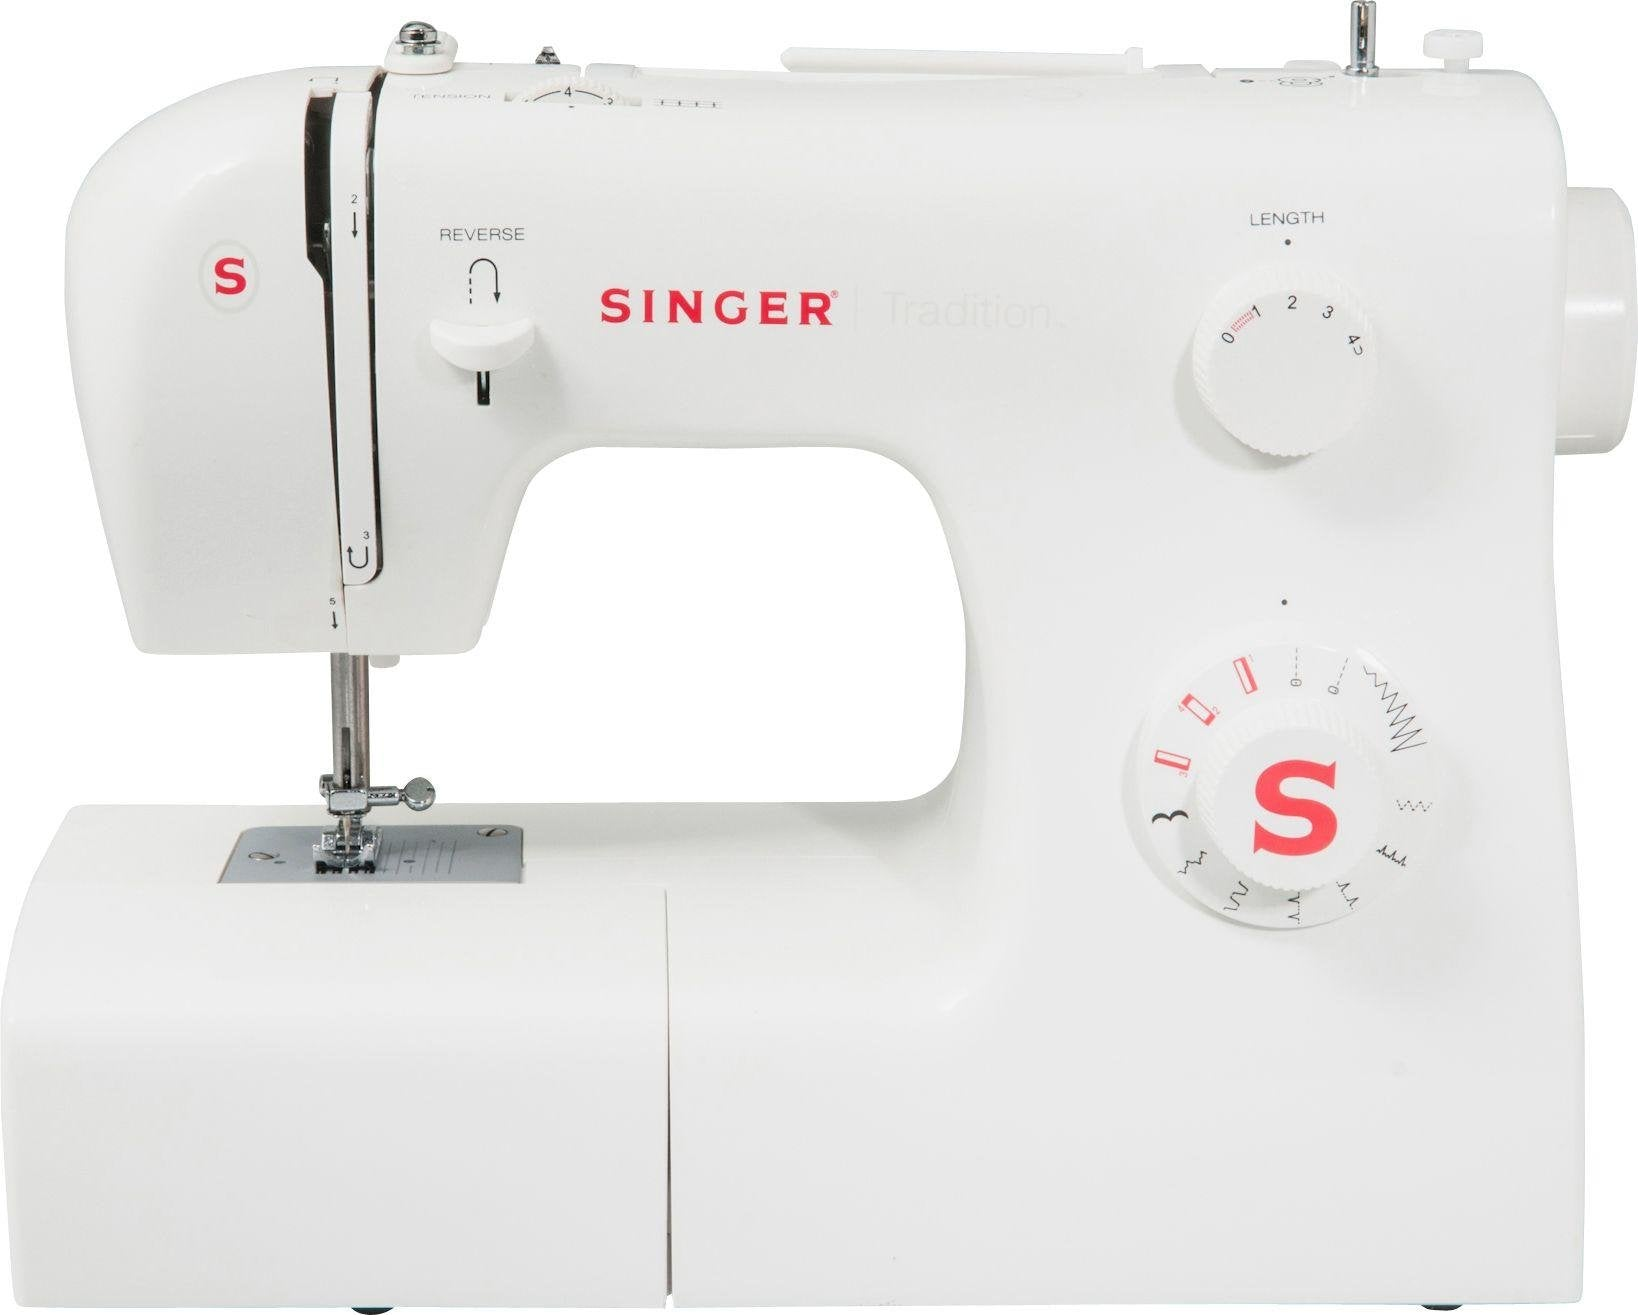 Singer Tradition 2250 Sewing Machine - Good as New